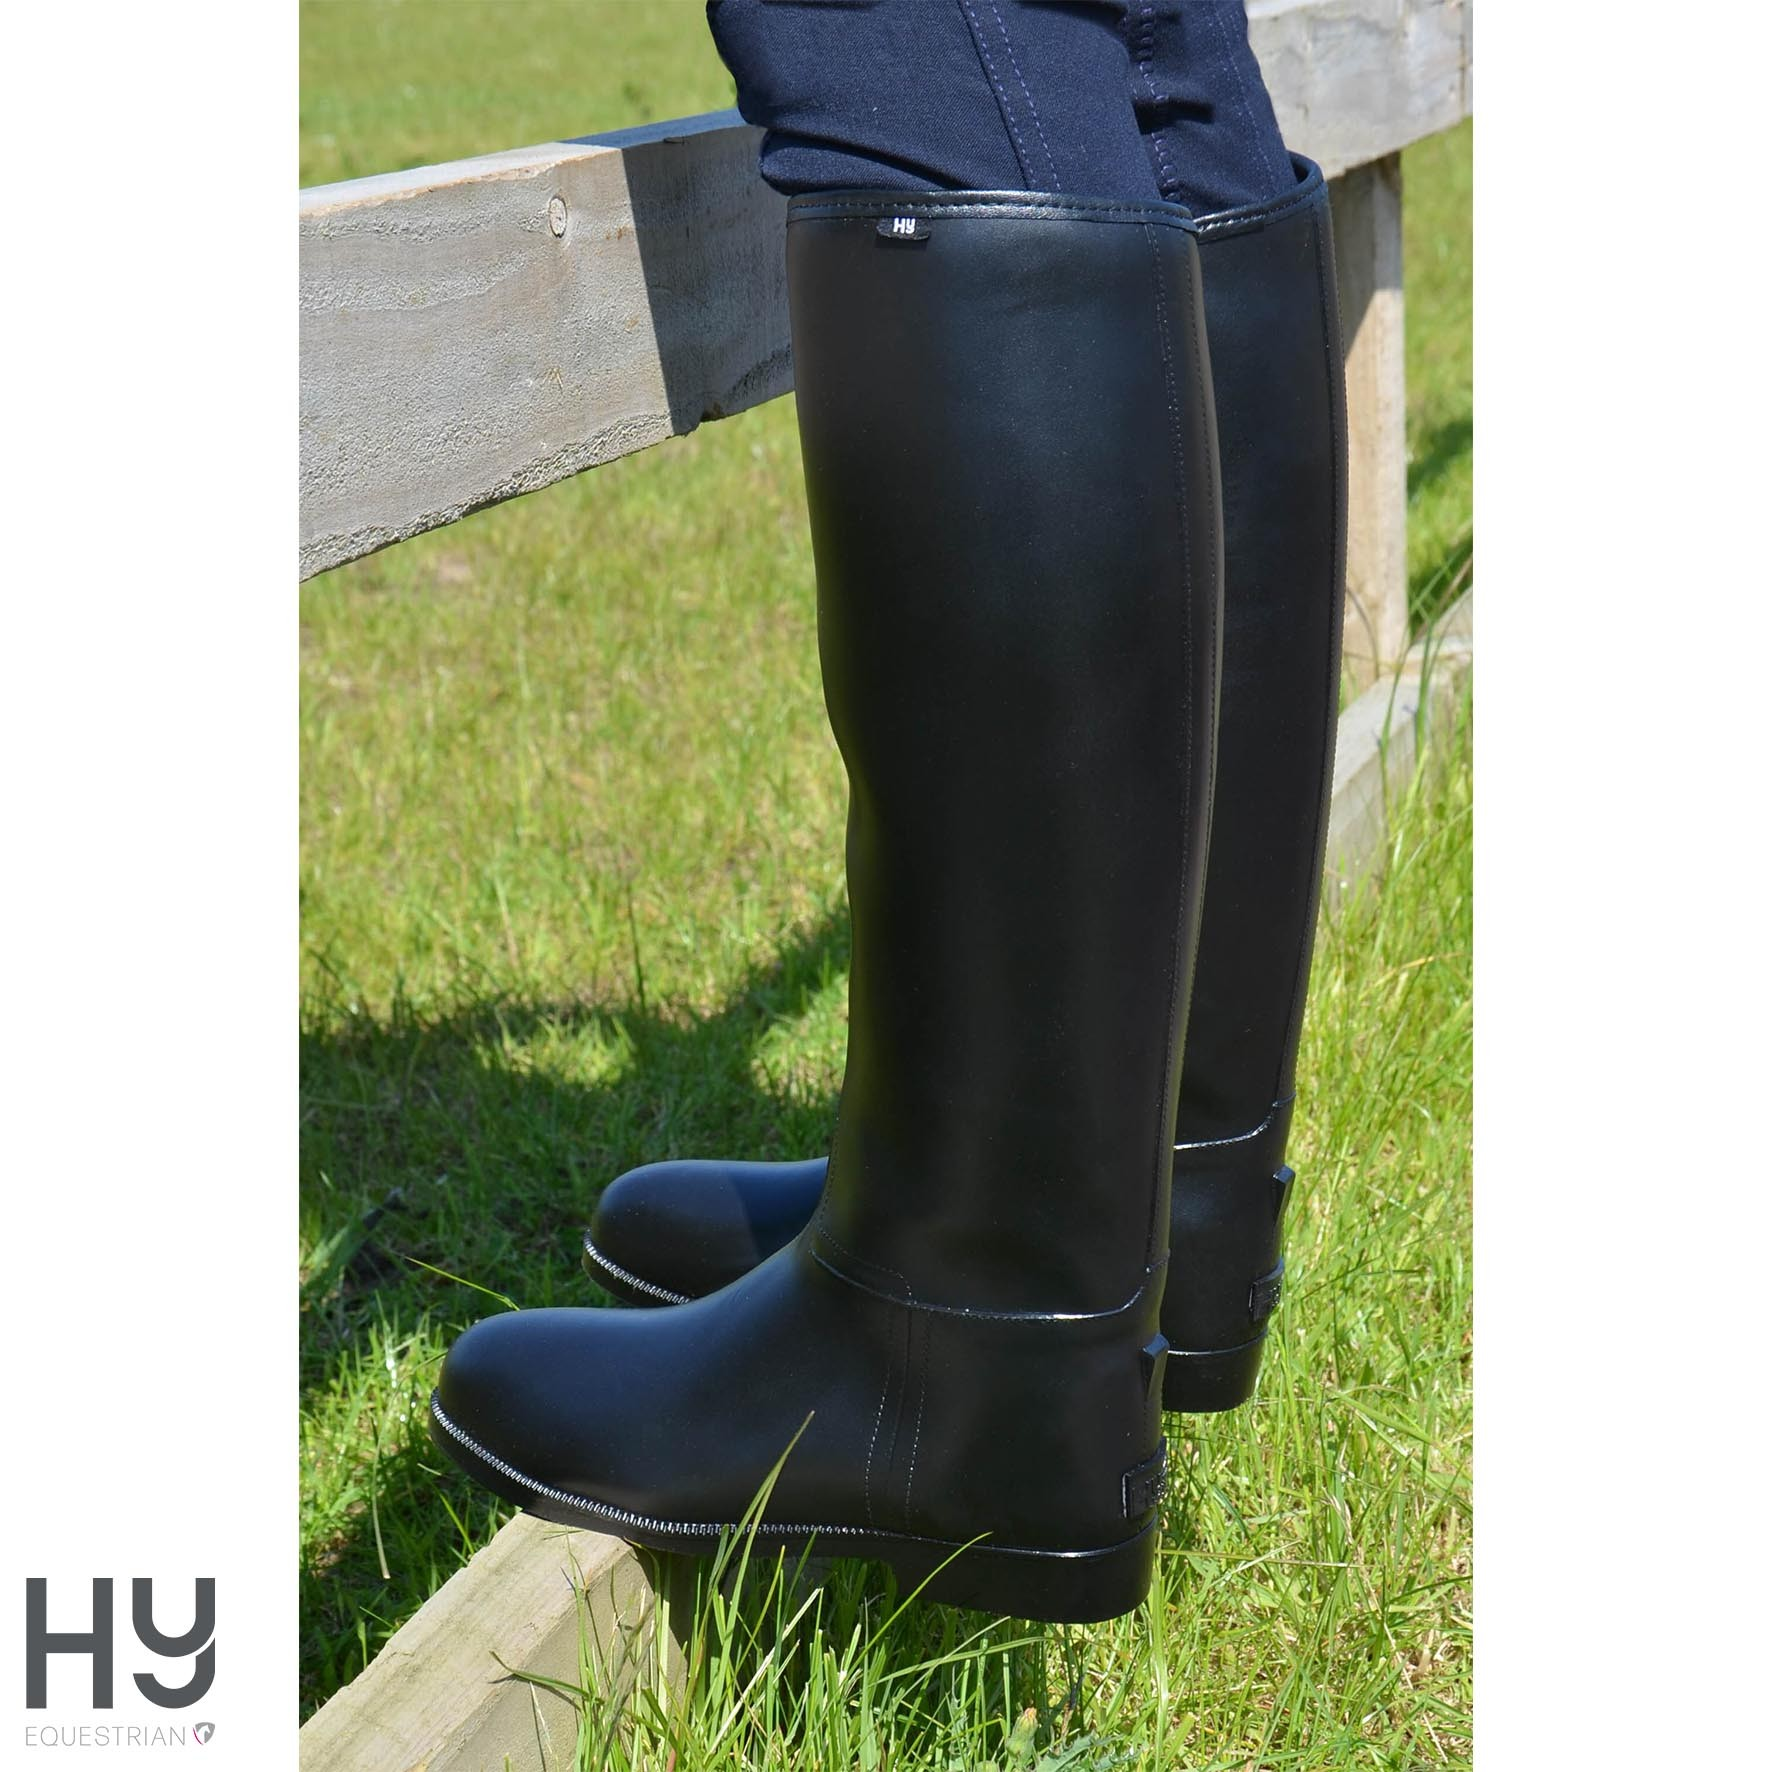 HyLAND Children's Long Greenland Waterproof Riding Boots